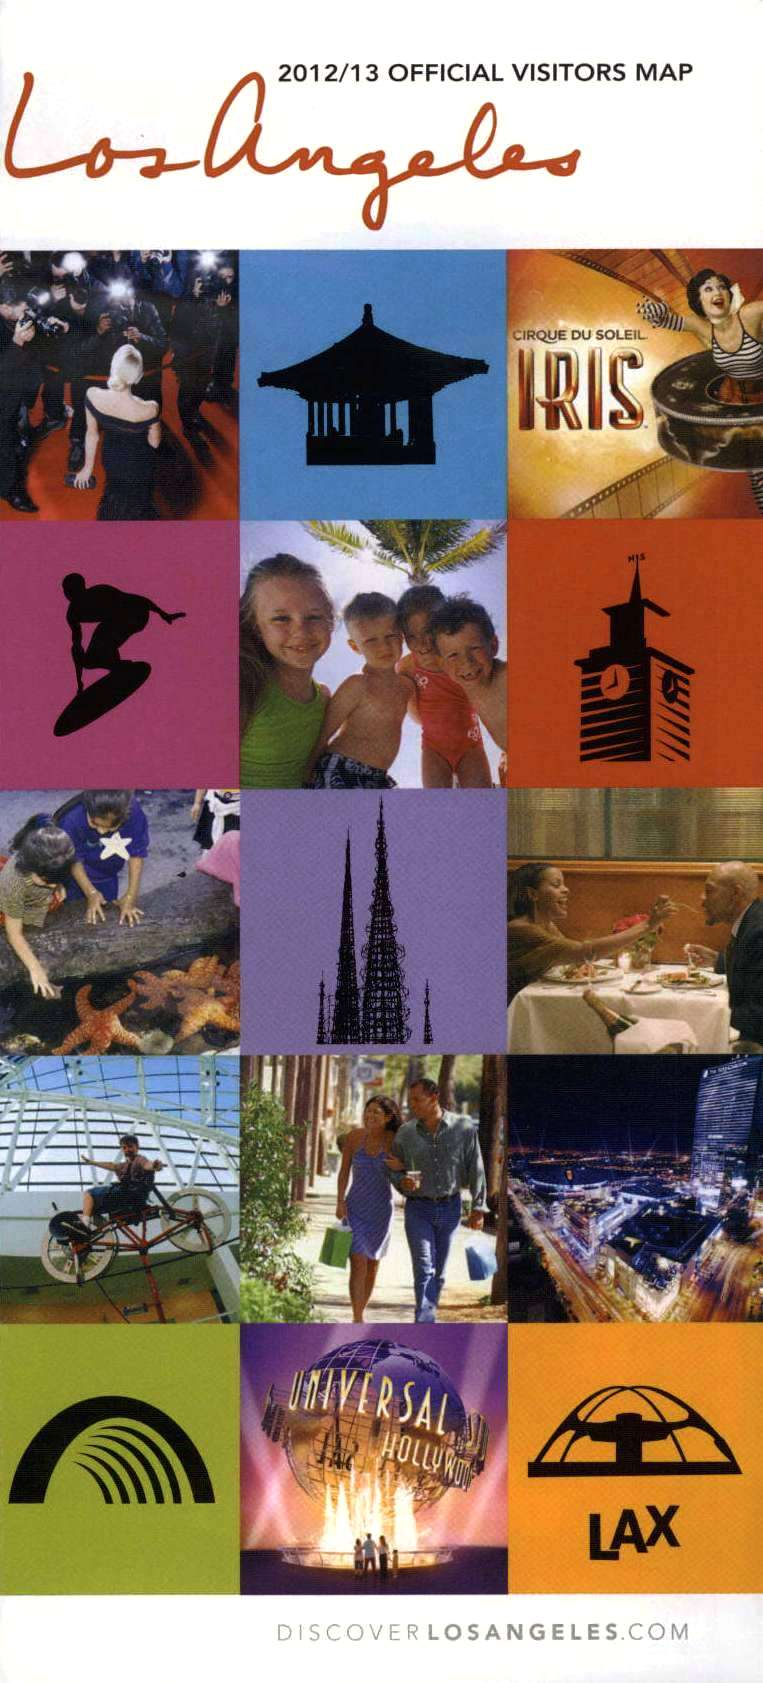 Los Angeles Visitors Map Back Brochure Cover